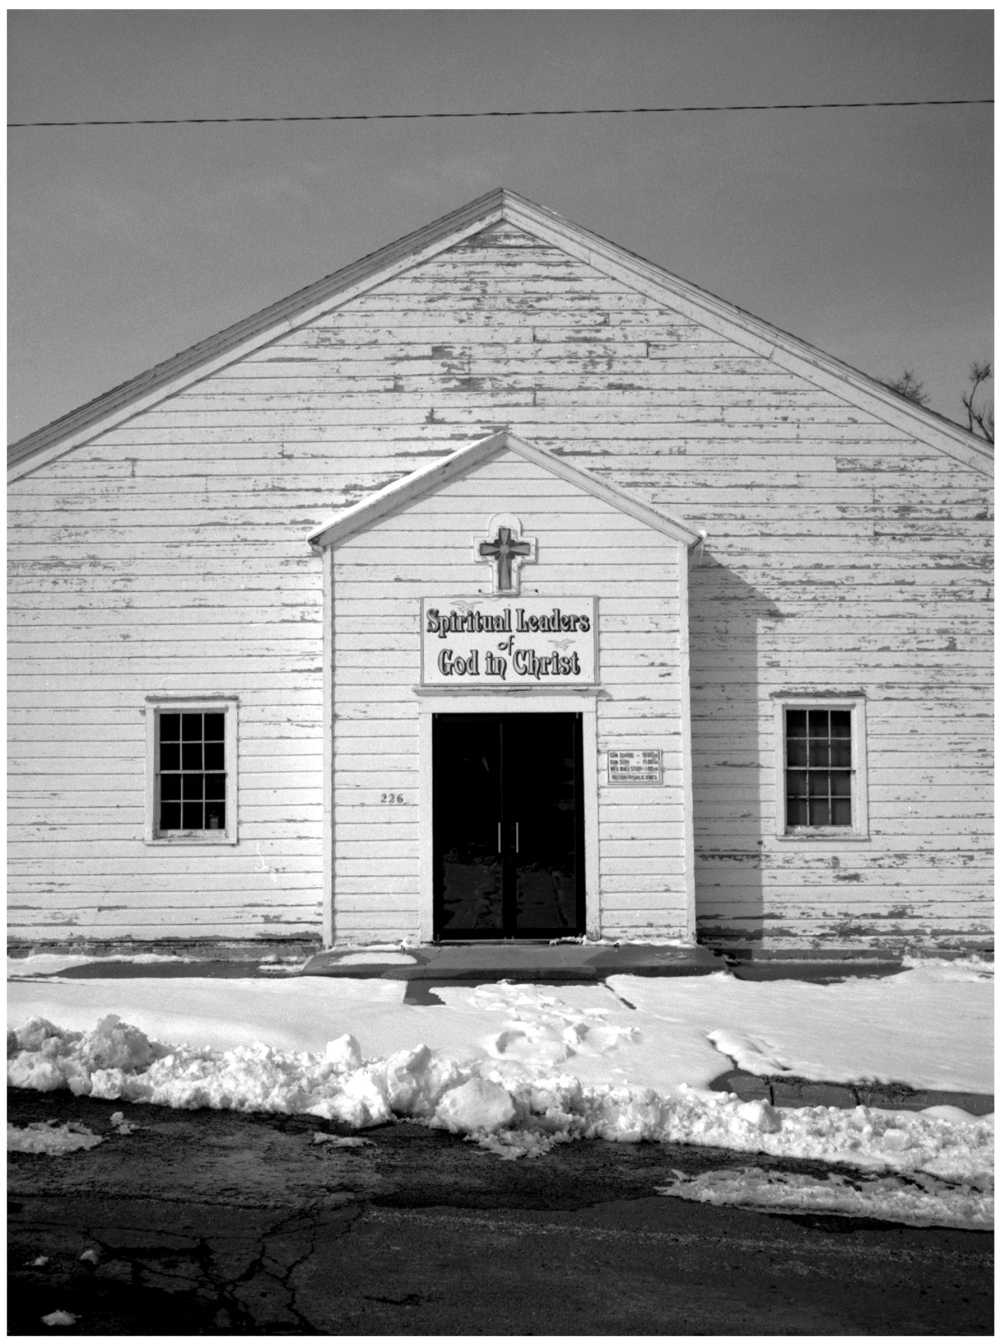 church in snow - grant edwards photography